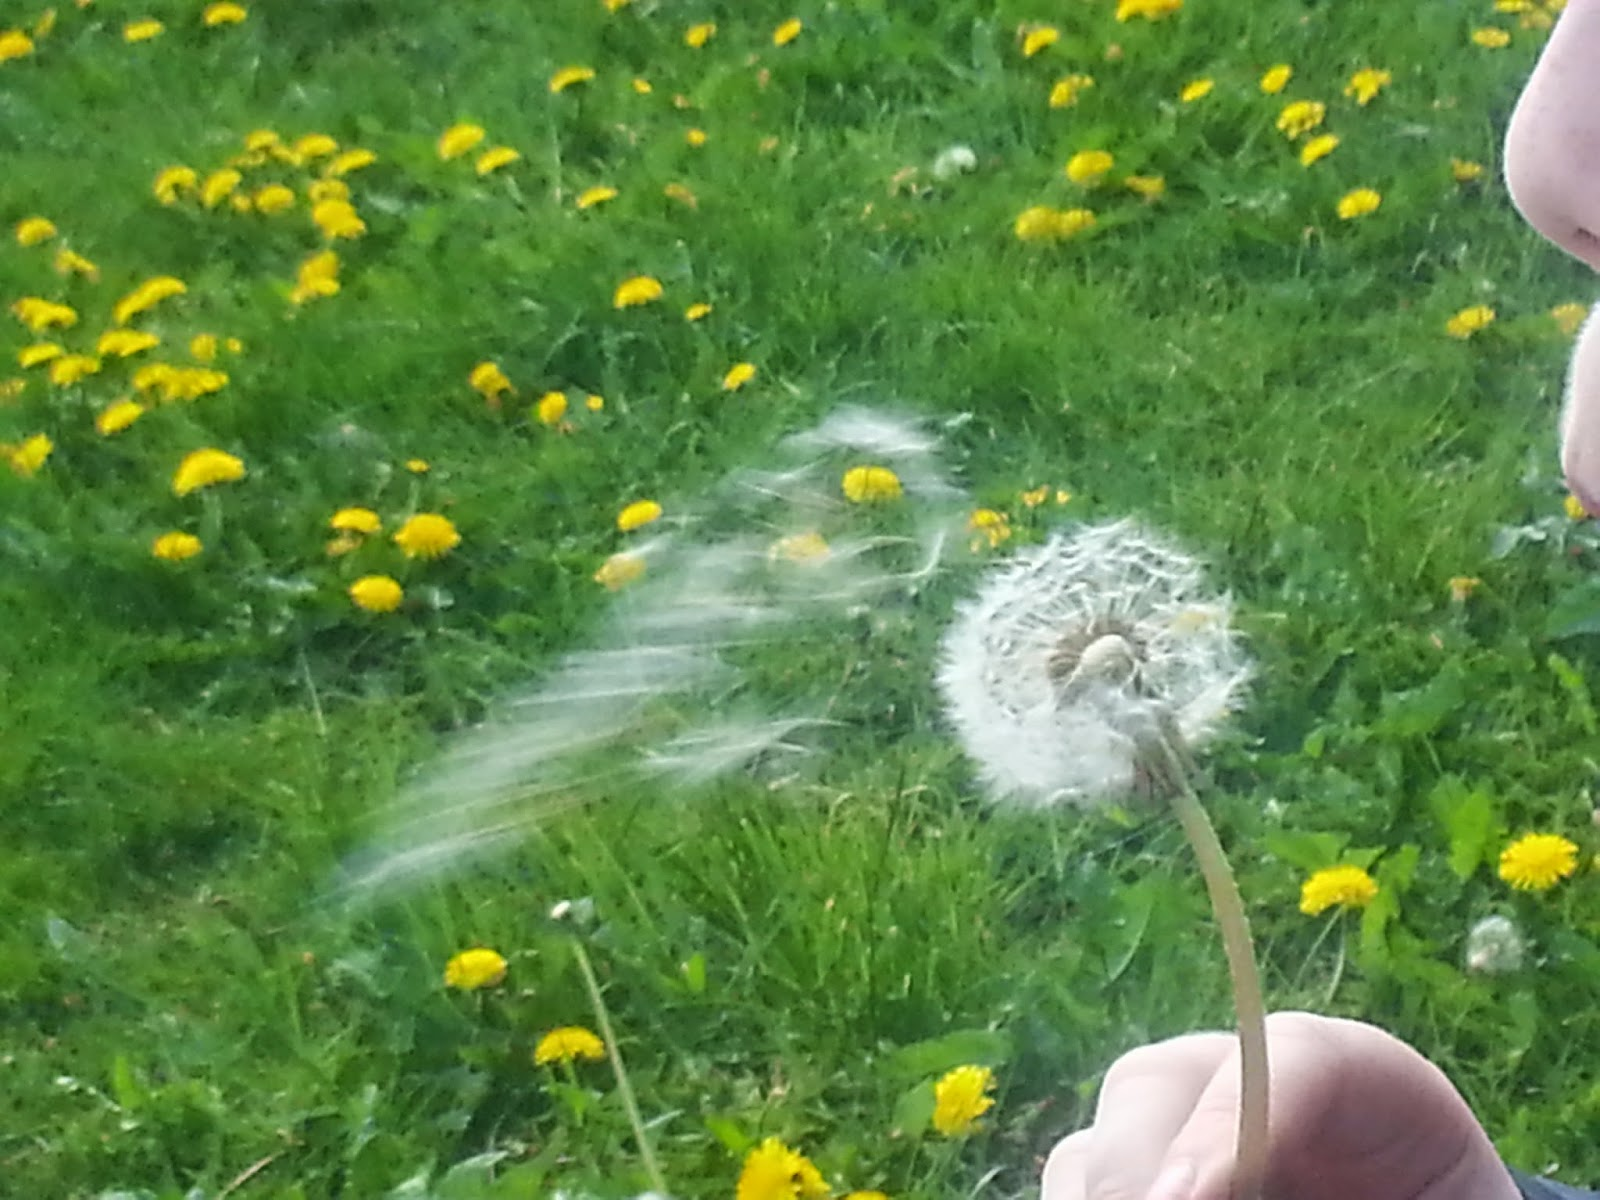 Blowing a dandelion clock